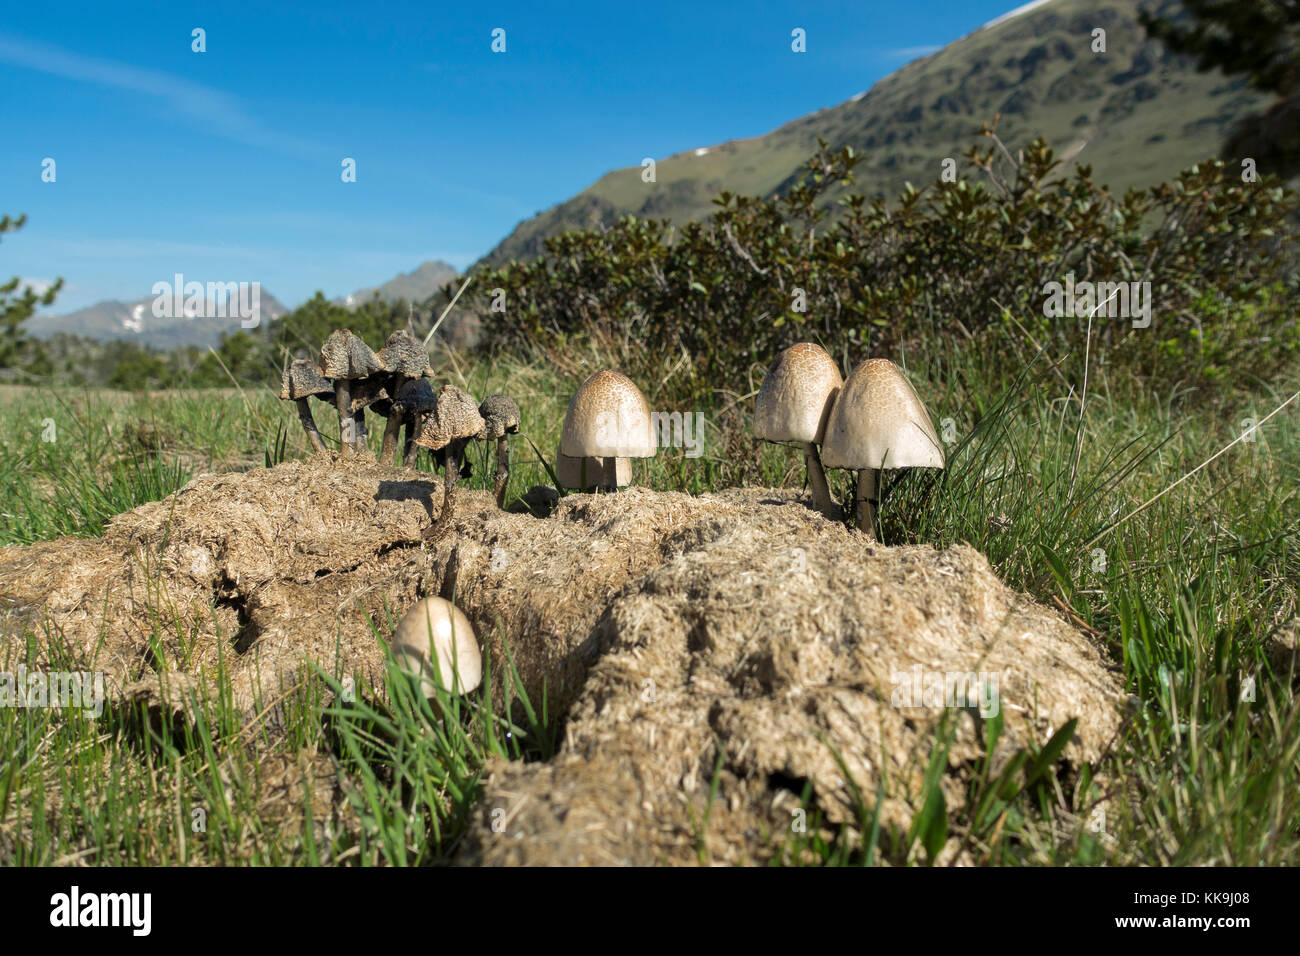 Mushrooms growing in cow shit - Stock Image